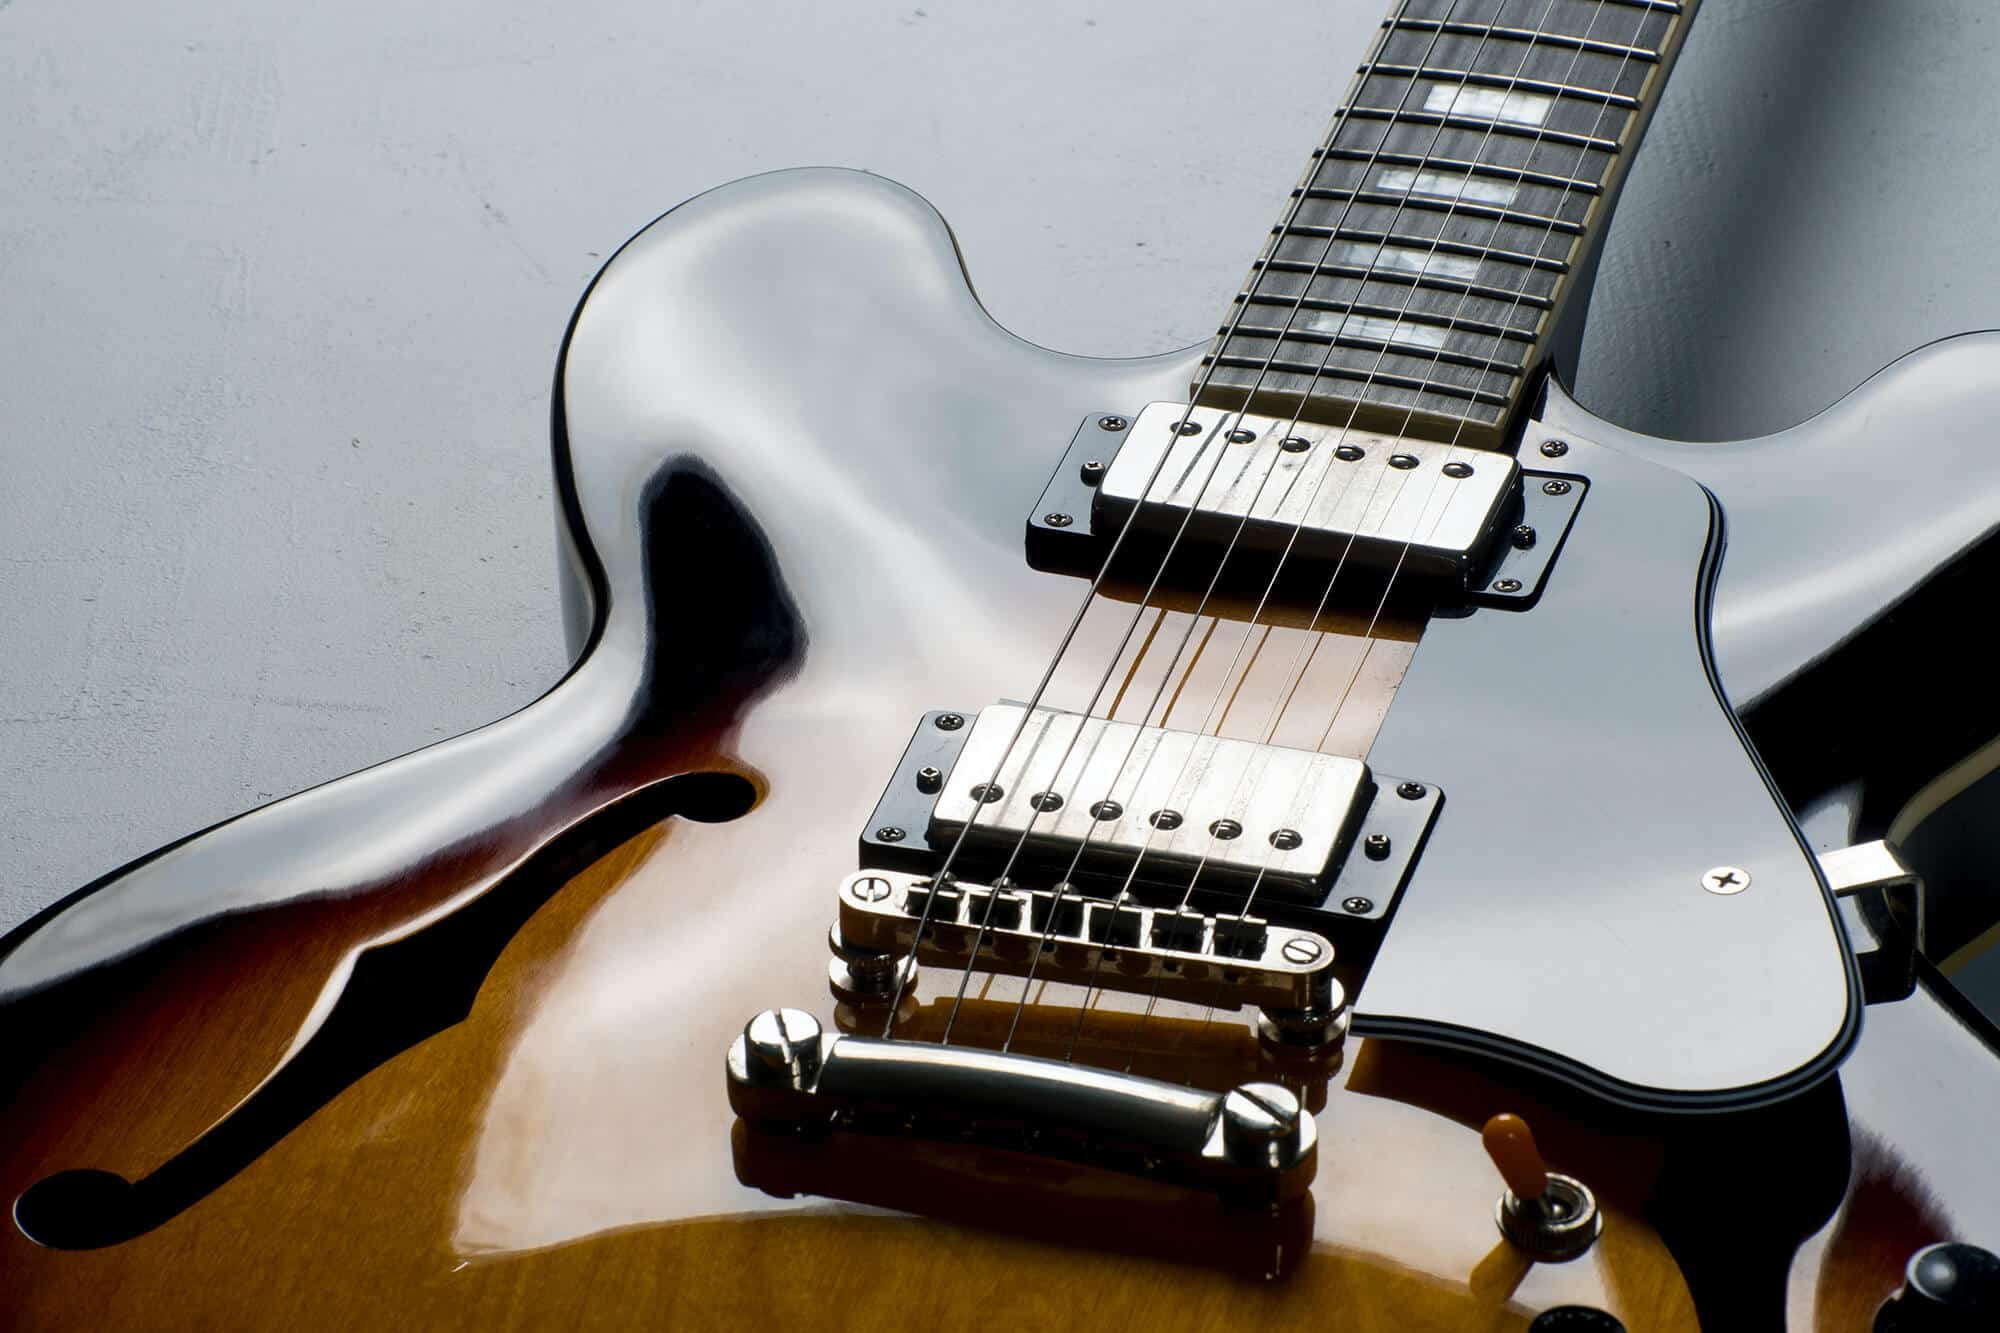 How Much Does It Cost To Refinish a Guitar?